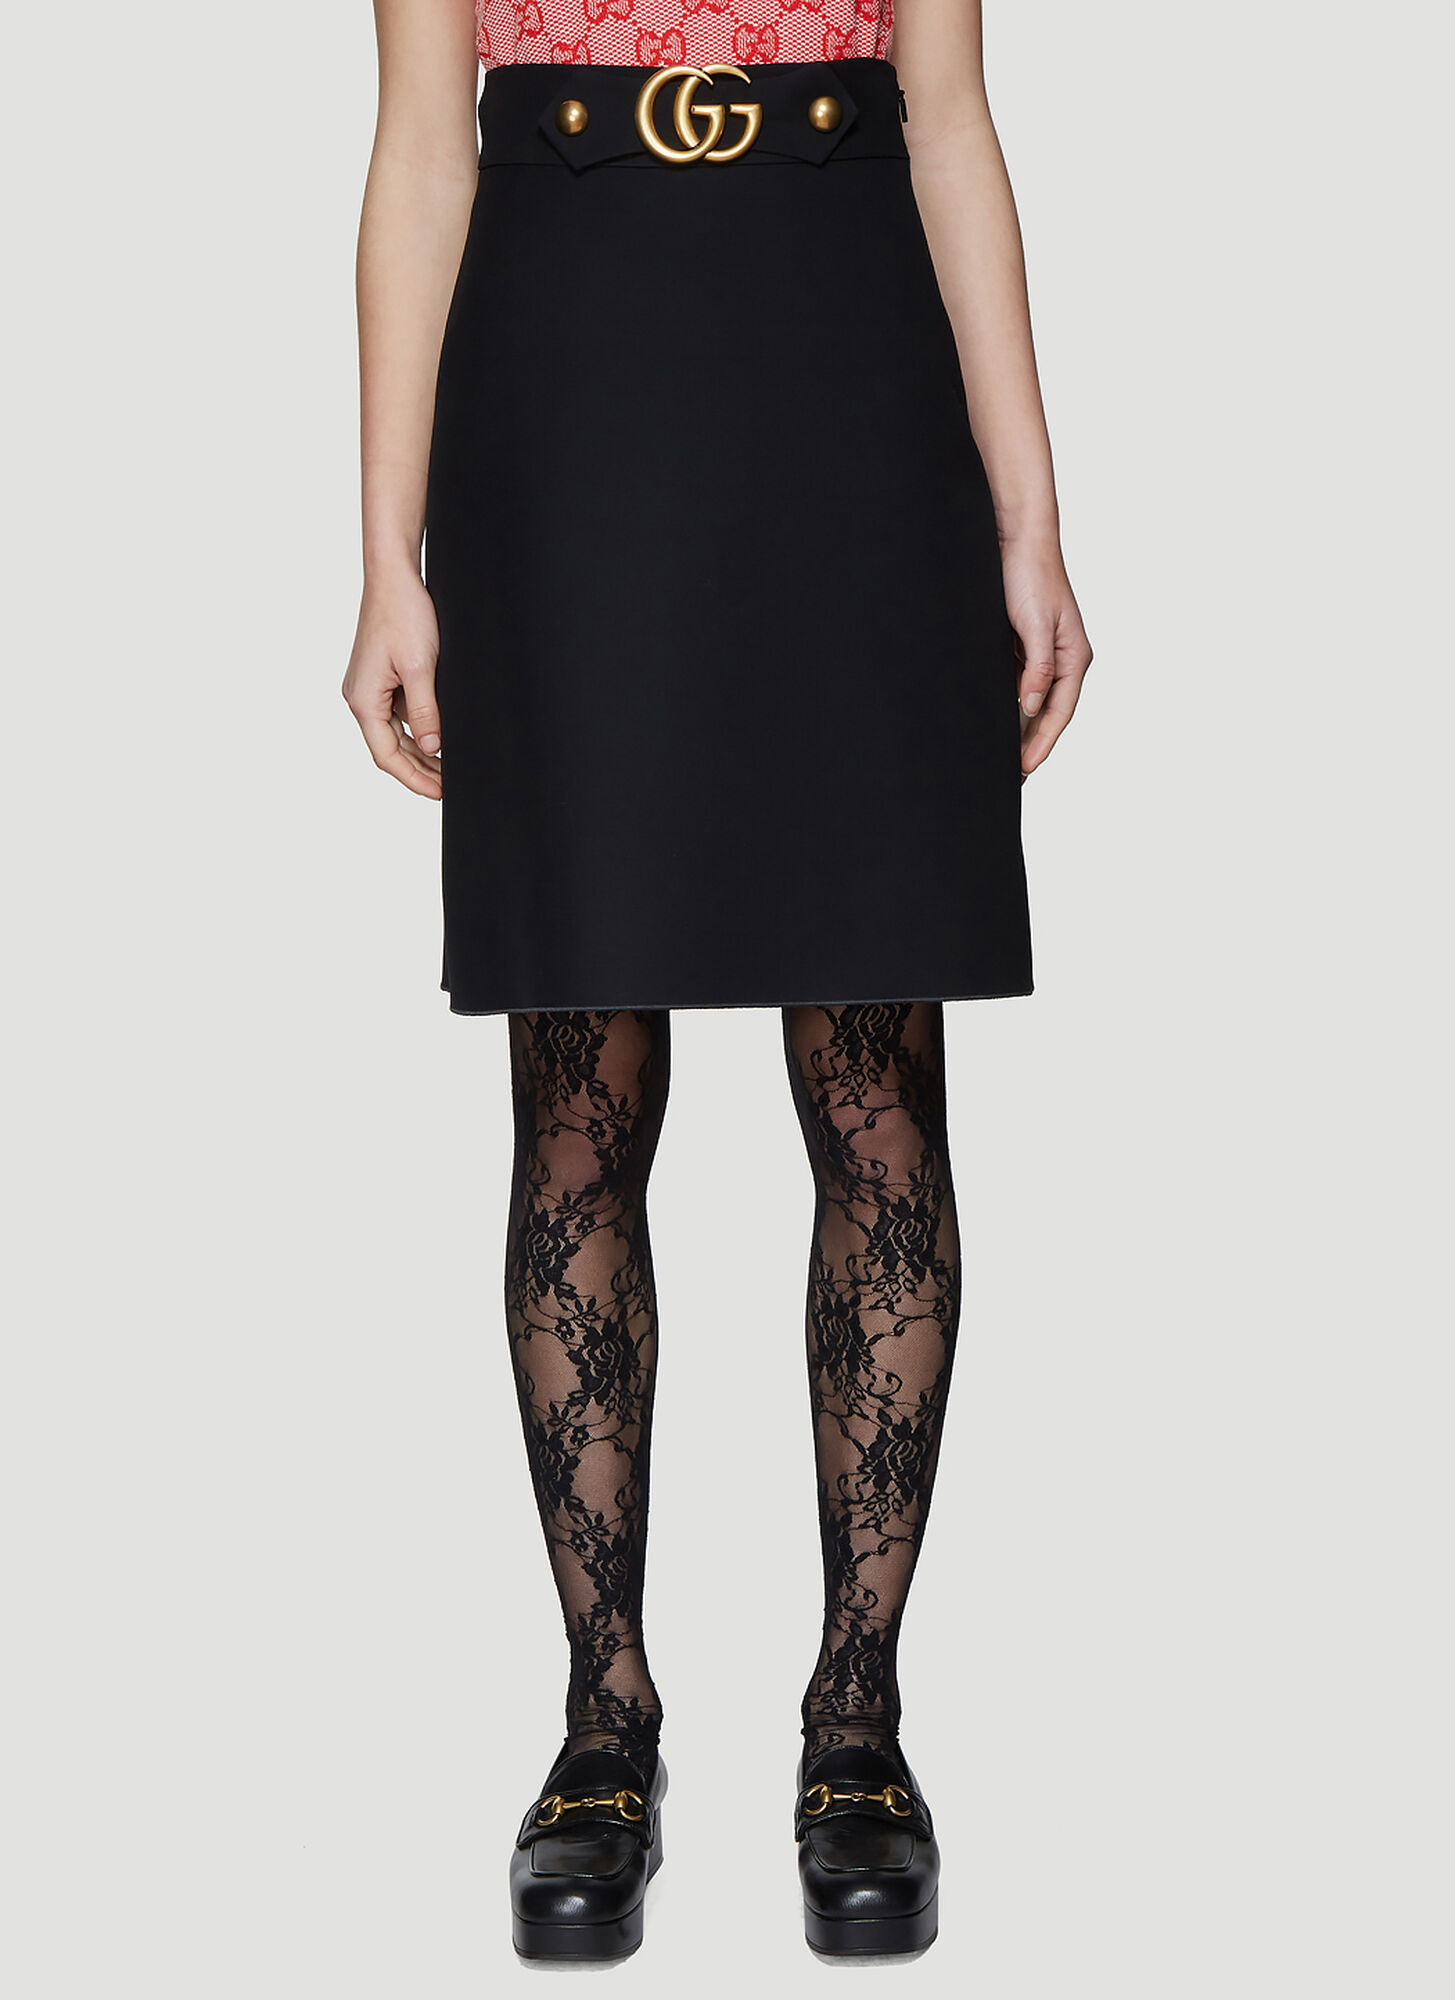 Gucci GG Skirt in Black